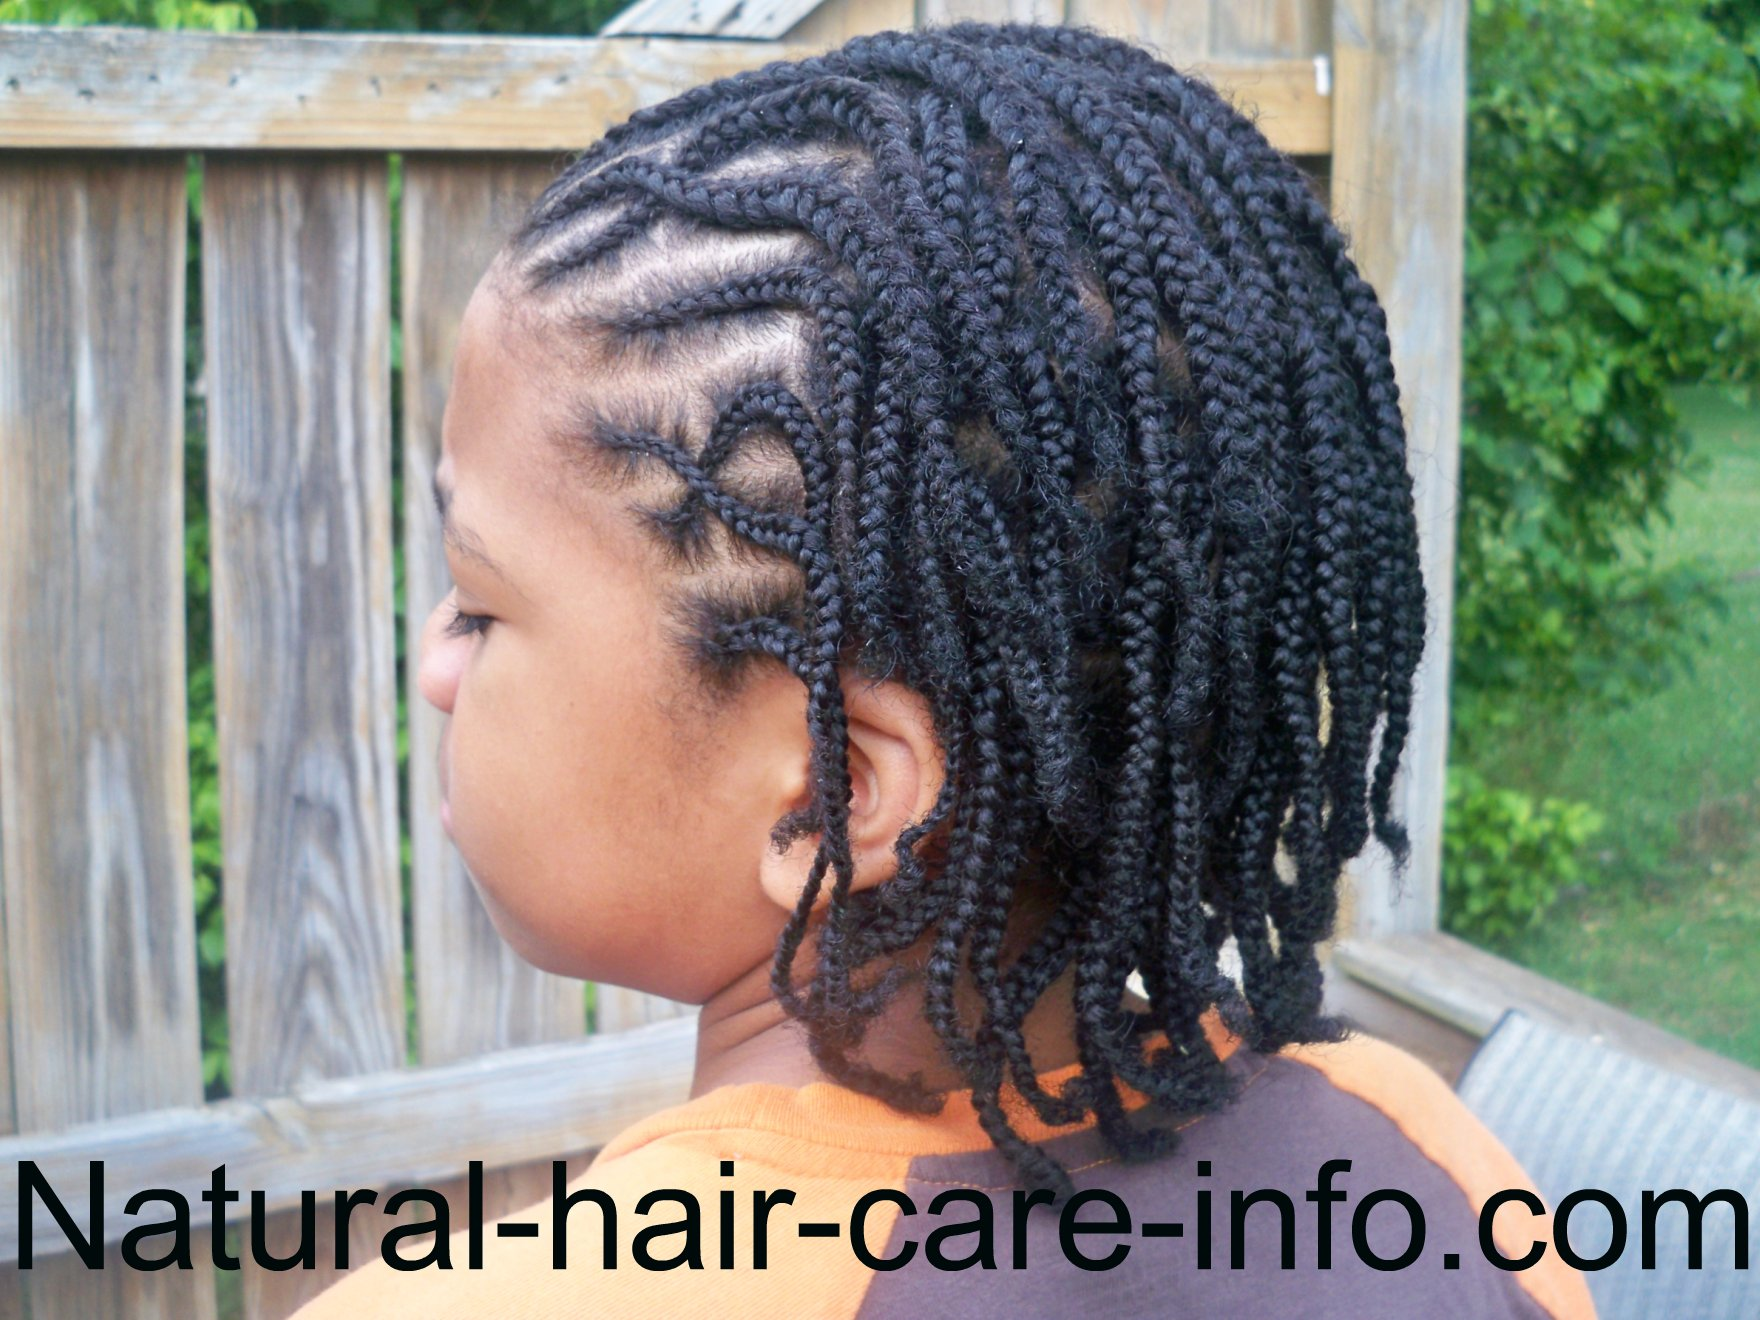 Sensational Braid Hairstyles For Men Complete List And Tutorials Hairstyles For Men Maxibearus